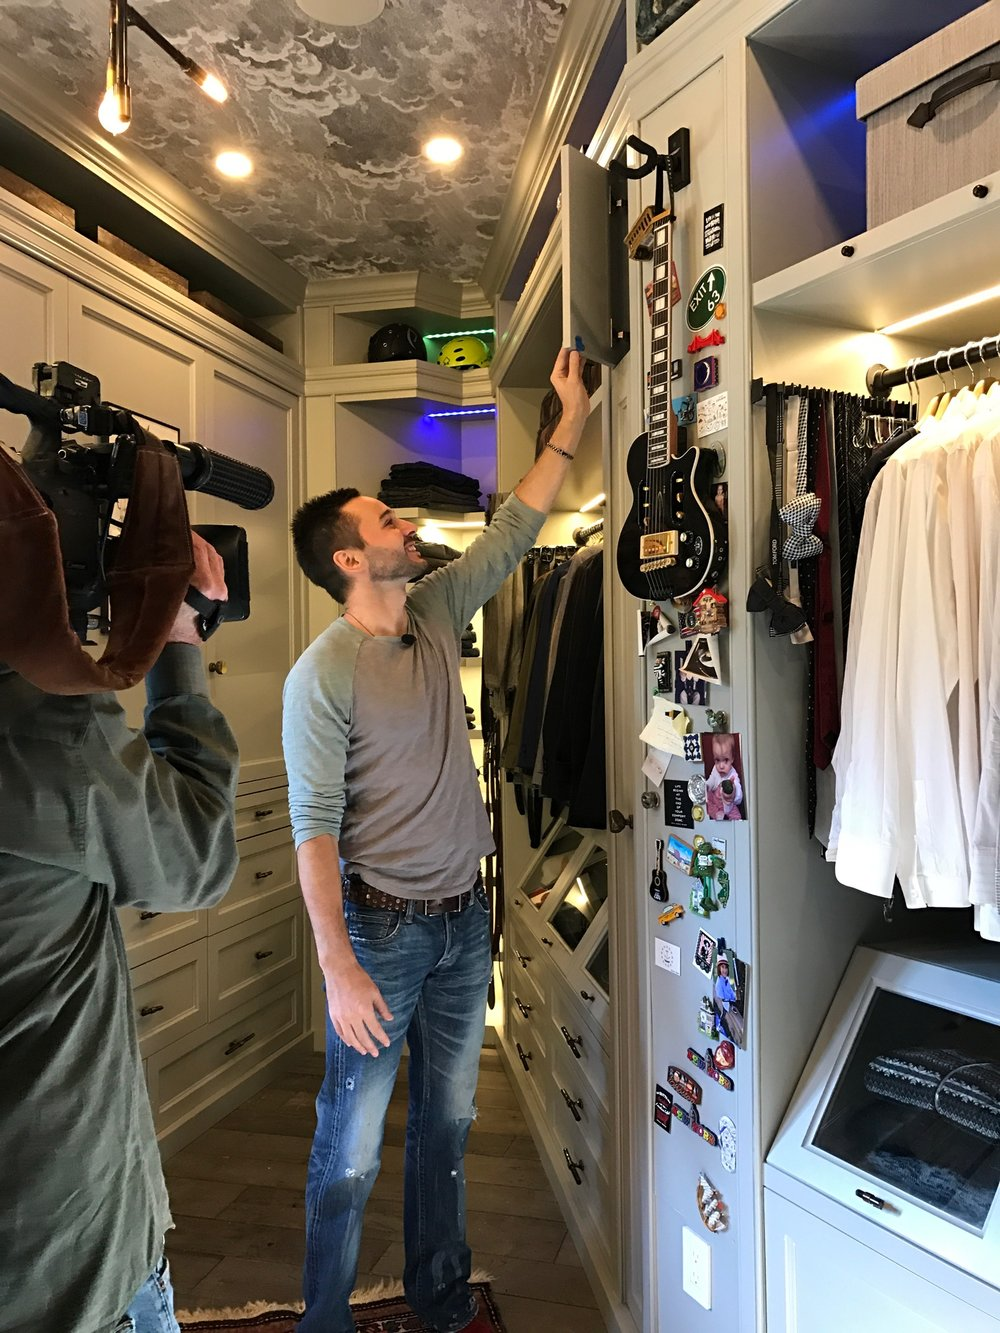 More And More Men Are Cleaning Out Their Closets And Turning Them Into A  Dream Space. This New Trend Has Designers Transforming Closets Of All Sizes  Into ...